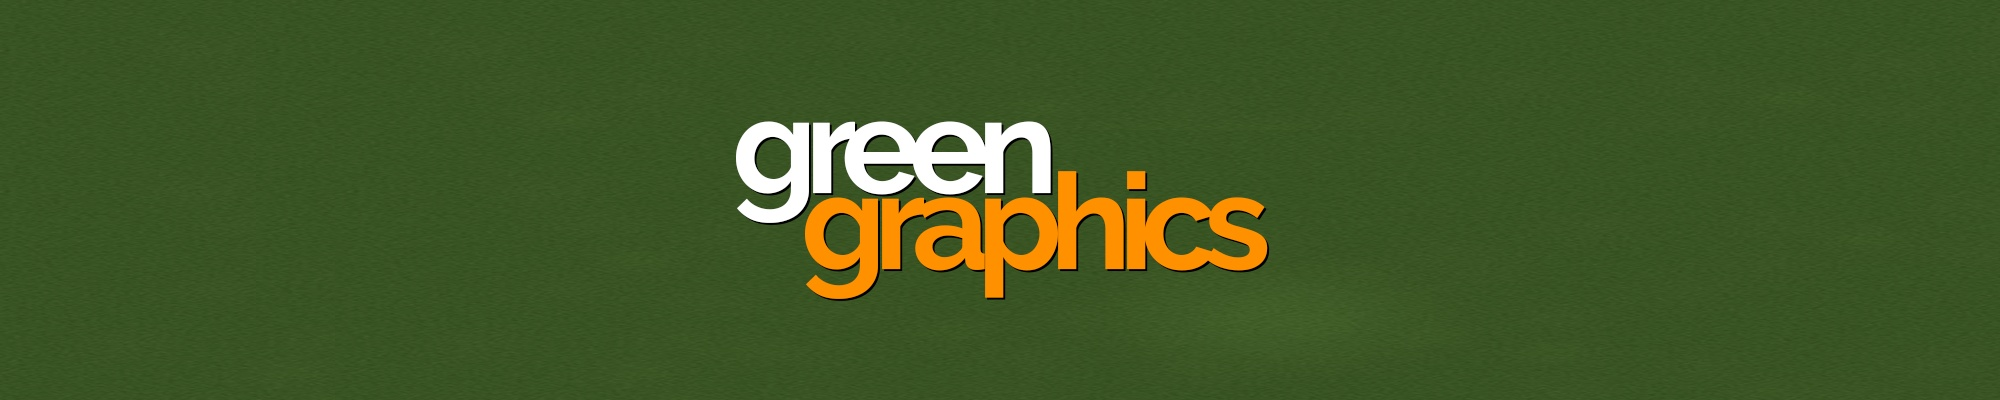 greengraphics Cover